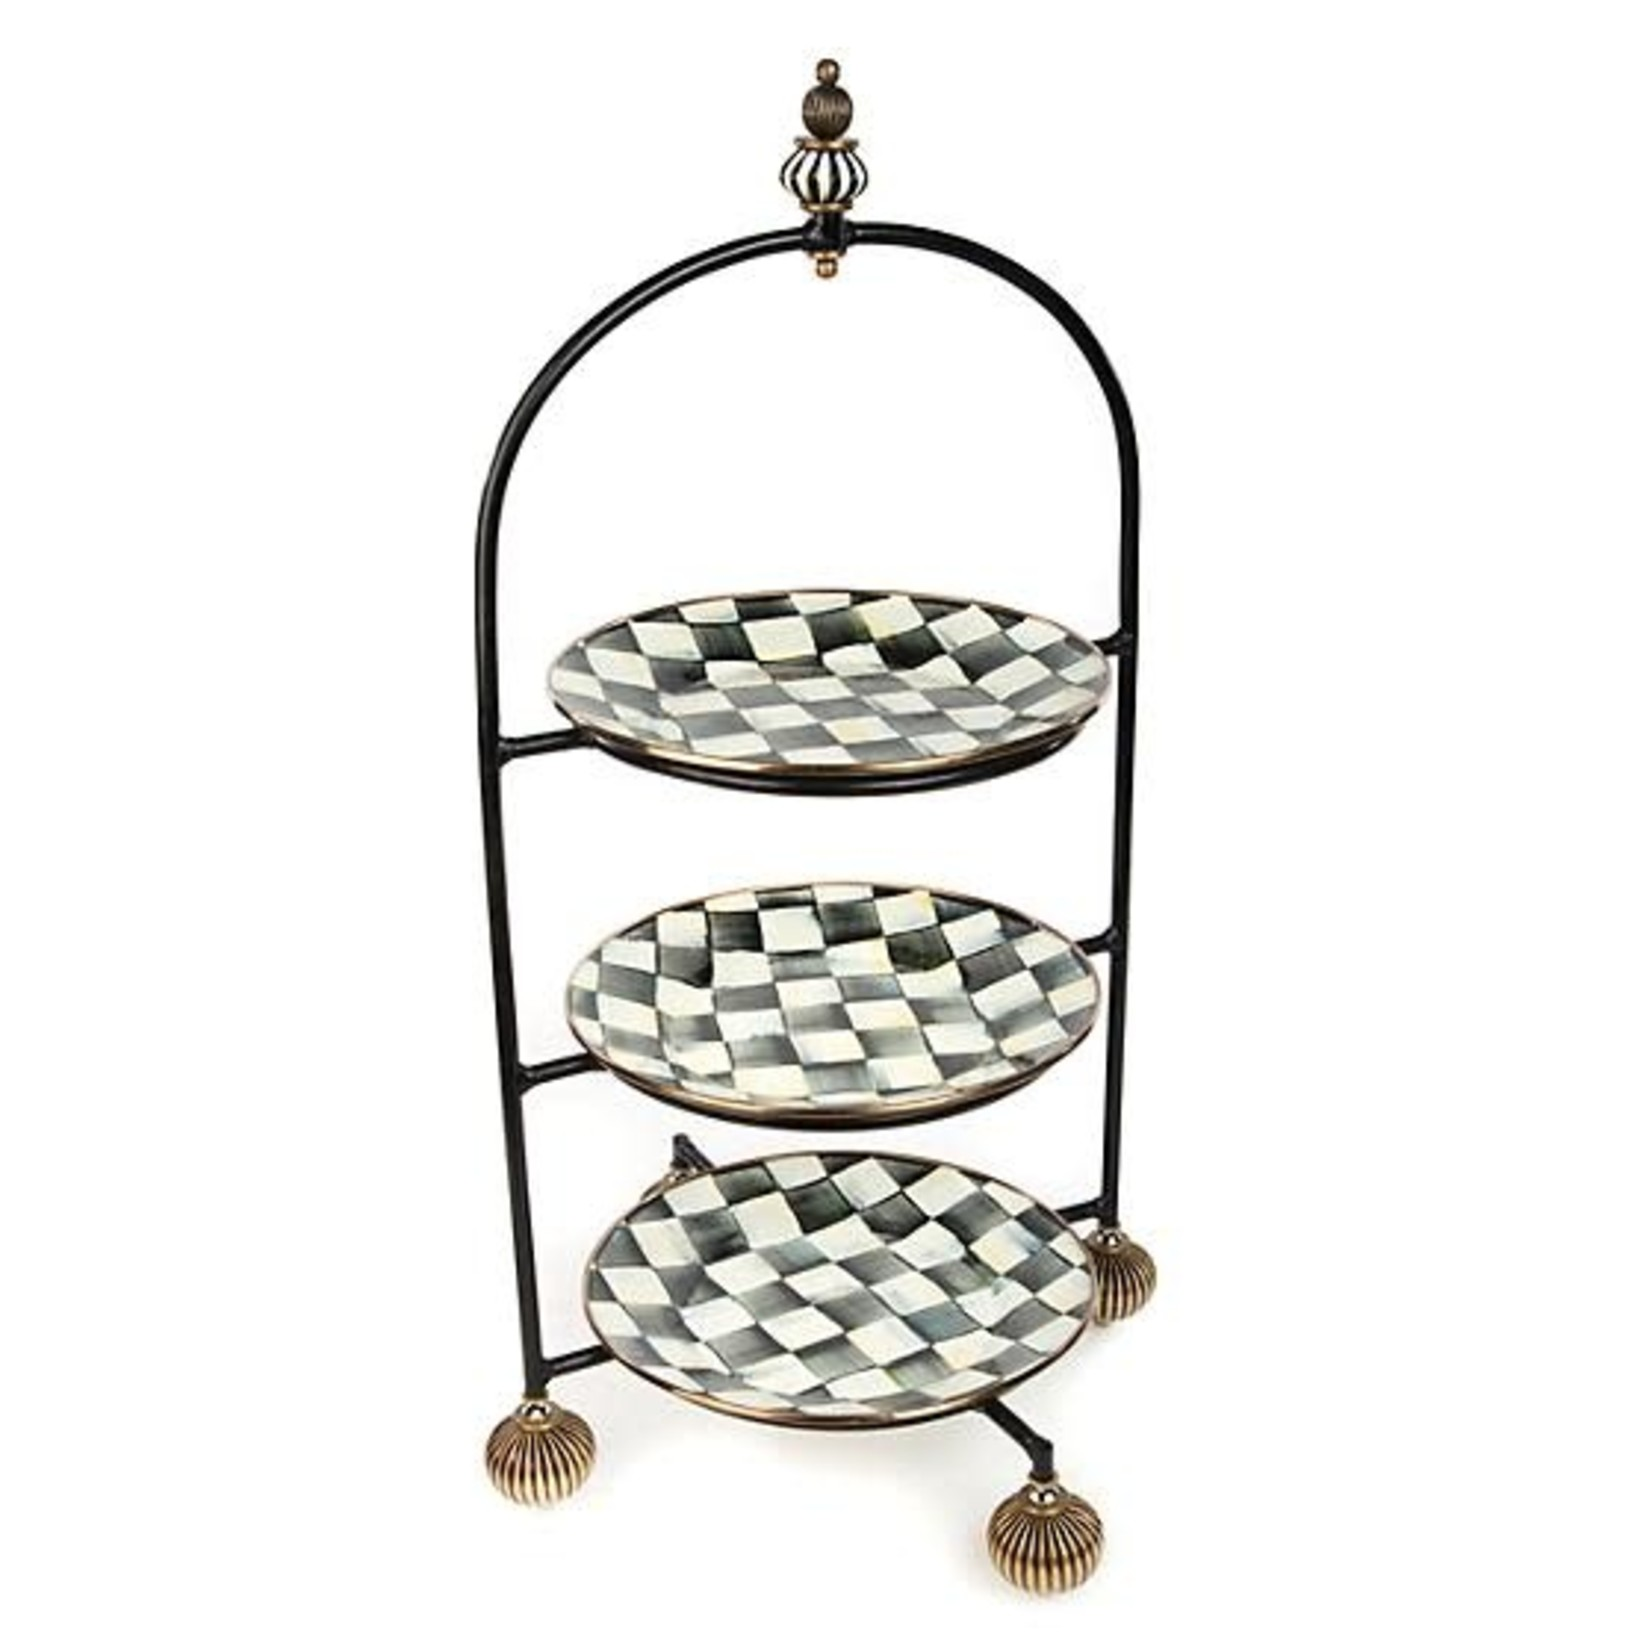 MacKenzie Childs Plate Stand - Large